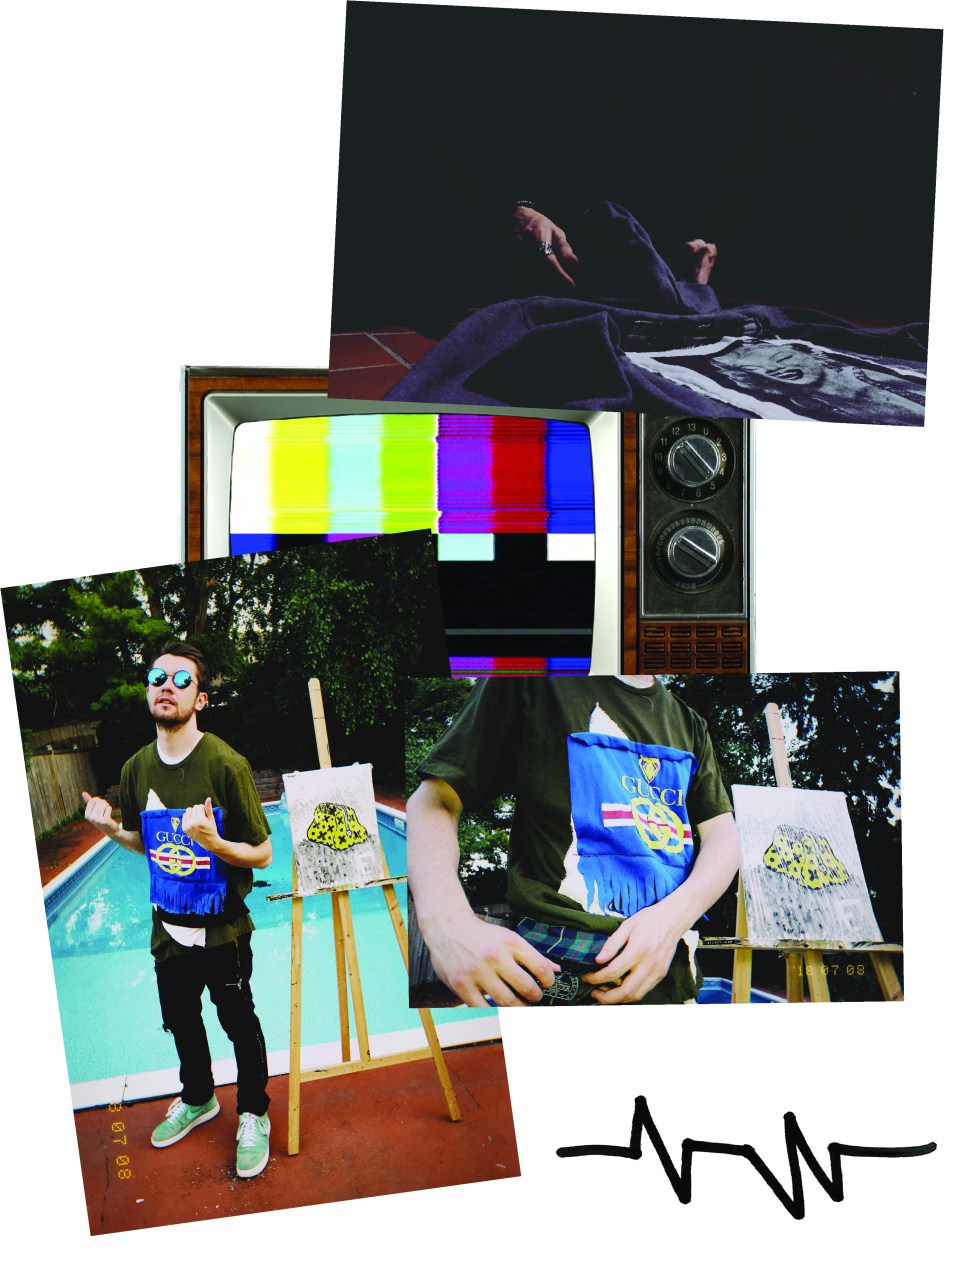 UNDRBLLY-LASTSTANDINGSHOOT-PAGE6